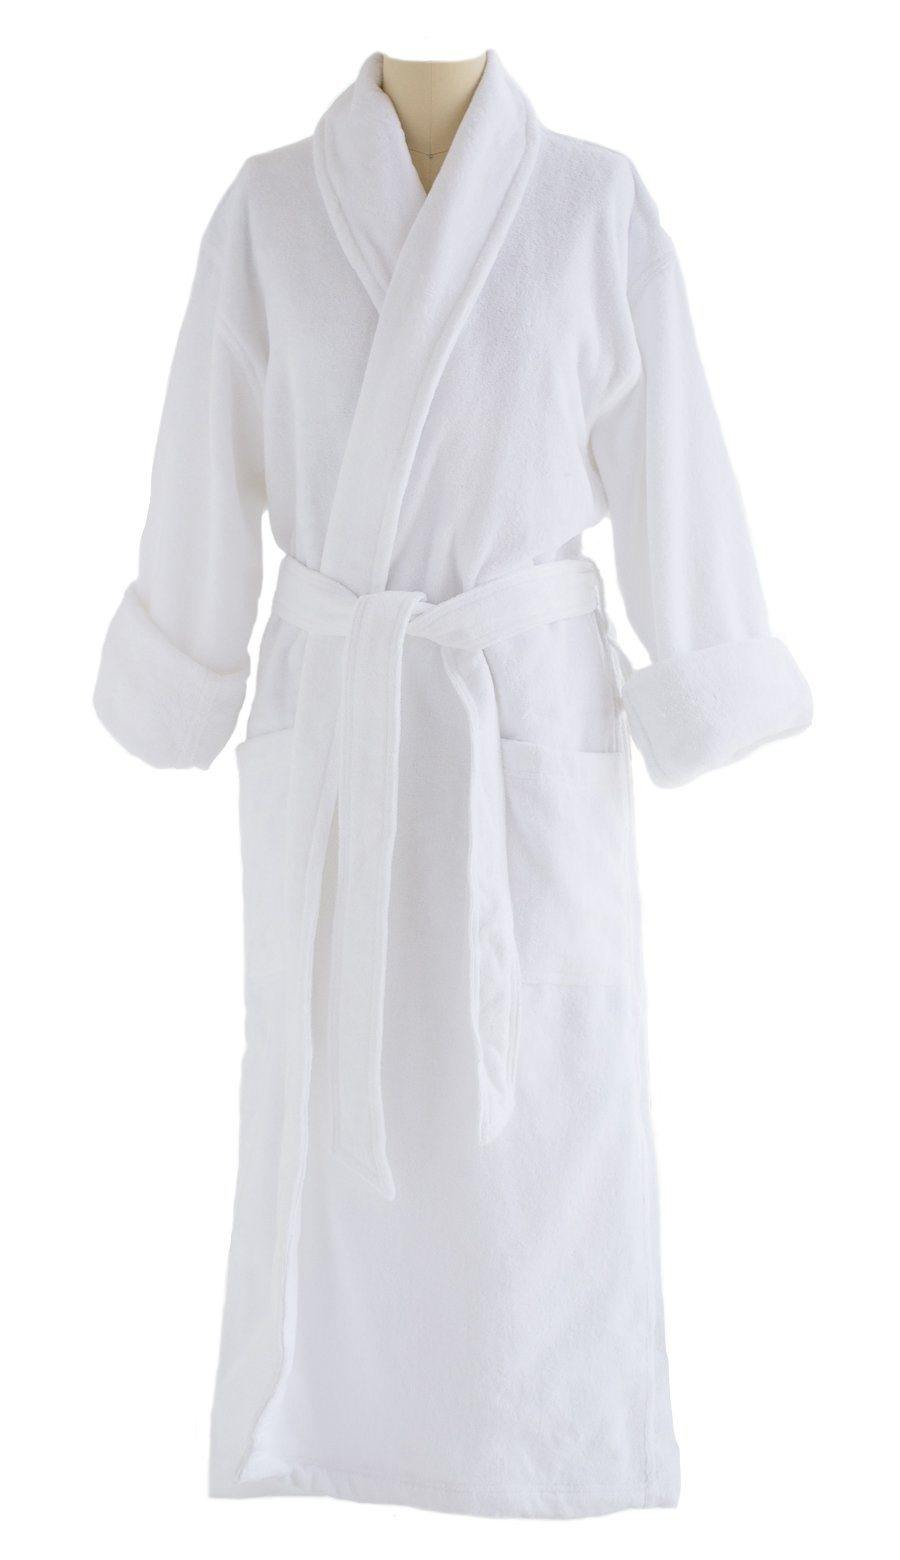 Terry Cloth Velour Robe | VTR2000 White